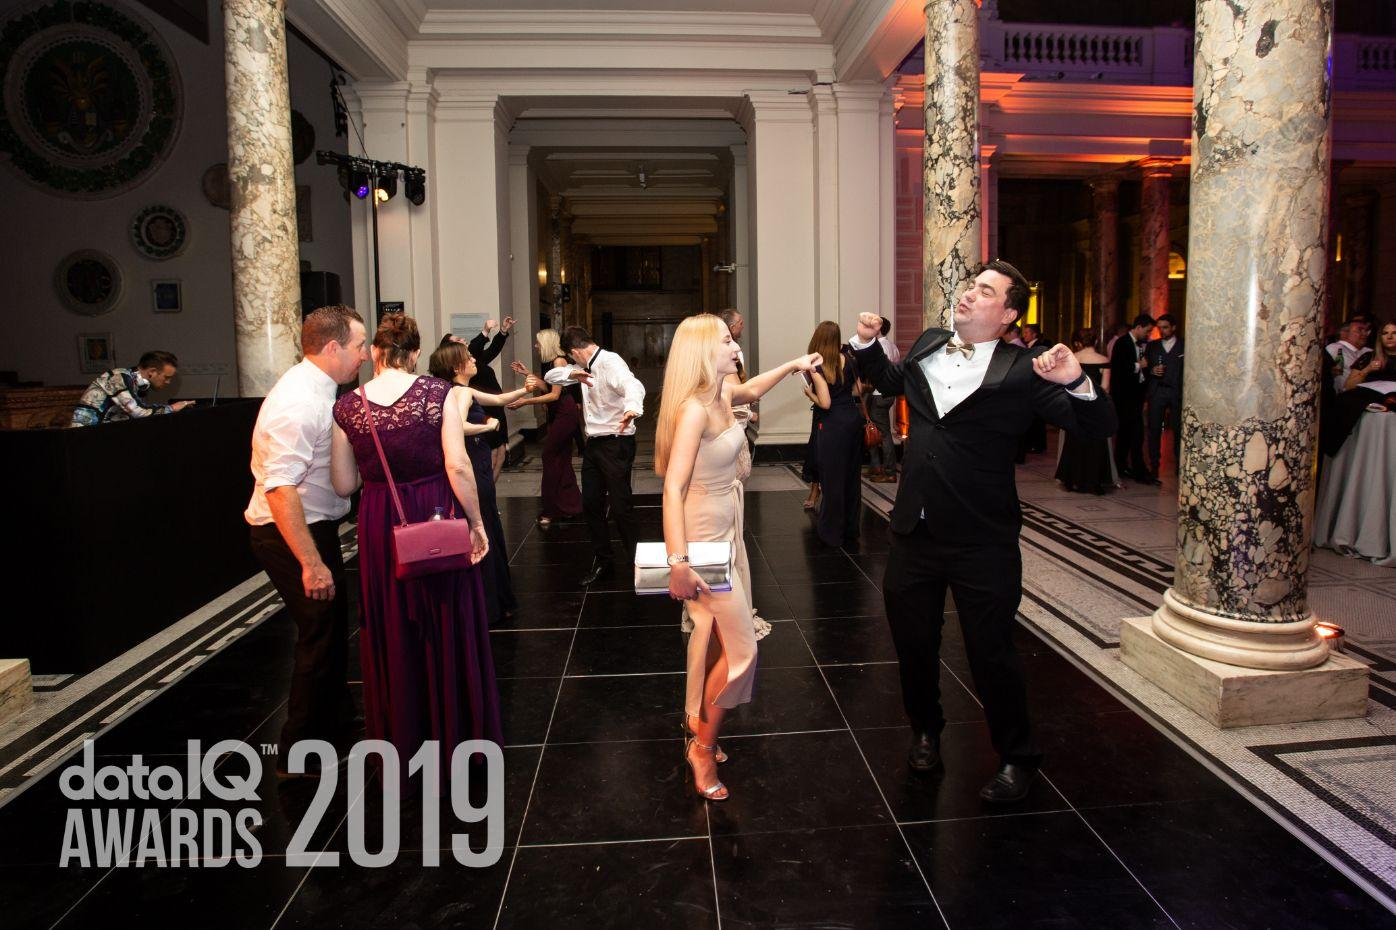 Awards 2019 Image 93